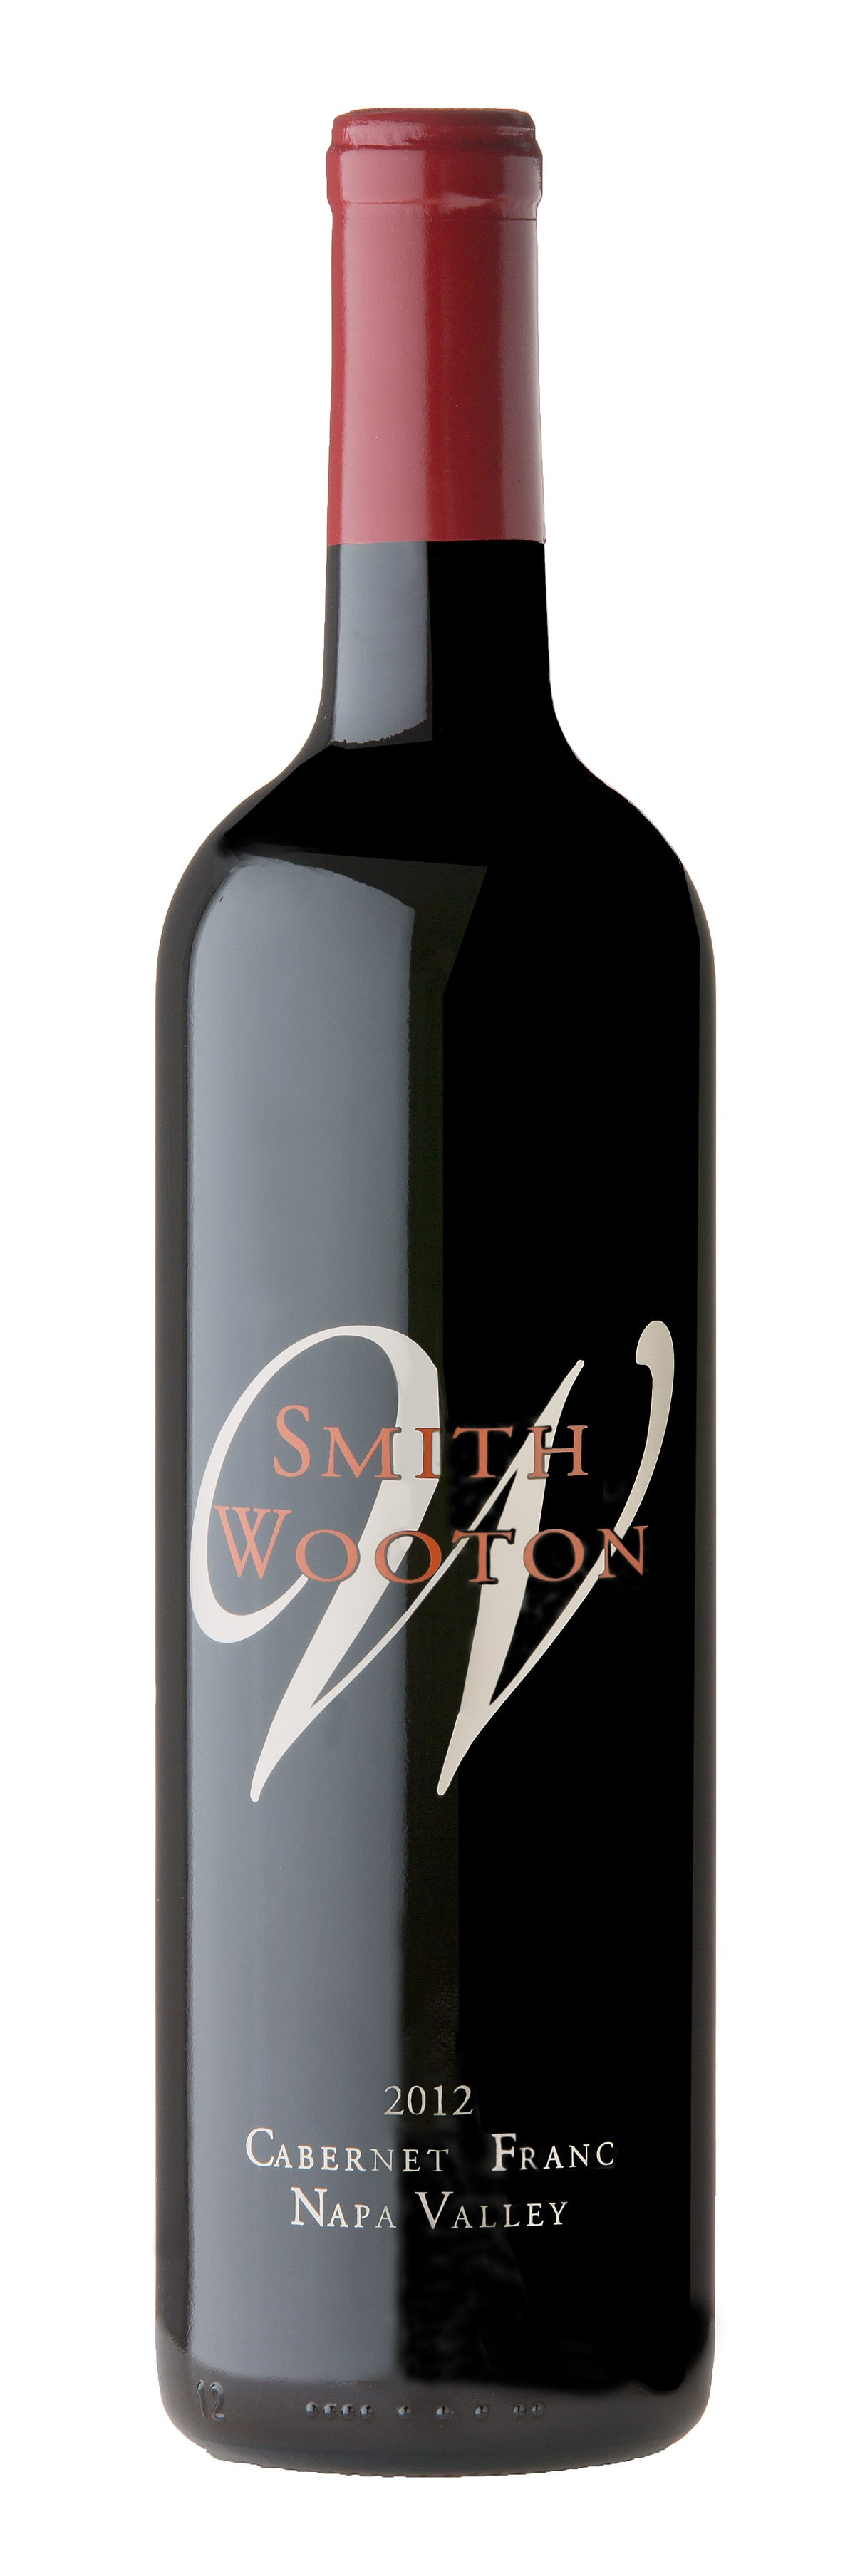 2012 Smith Wooton Cabernet Franc Napa Valley